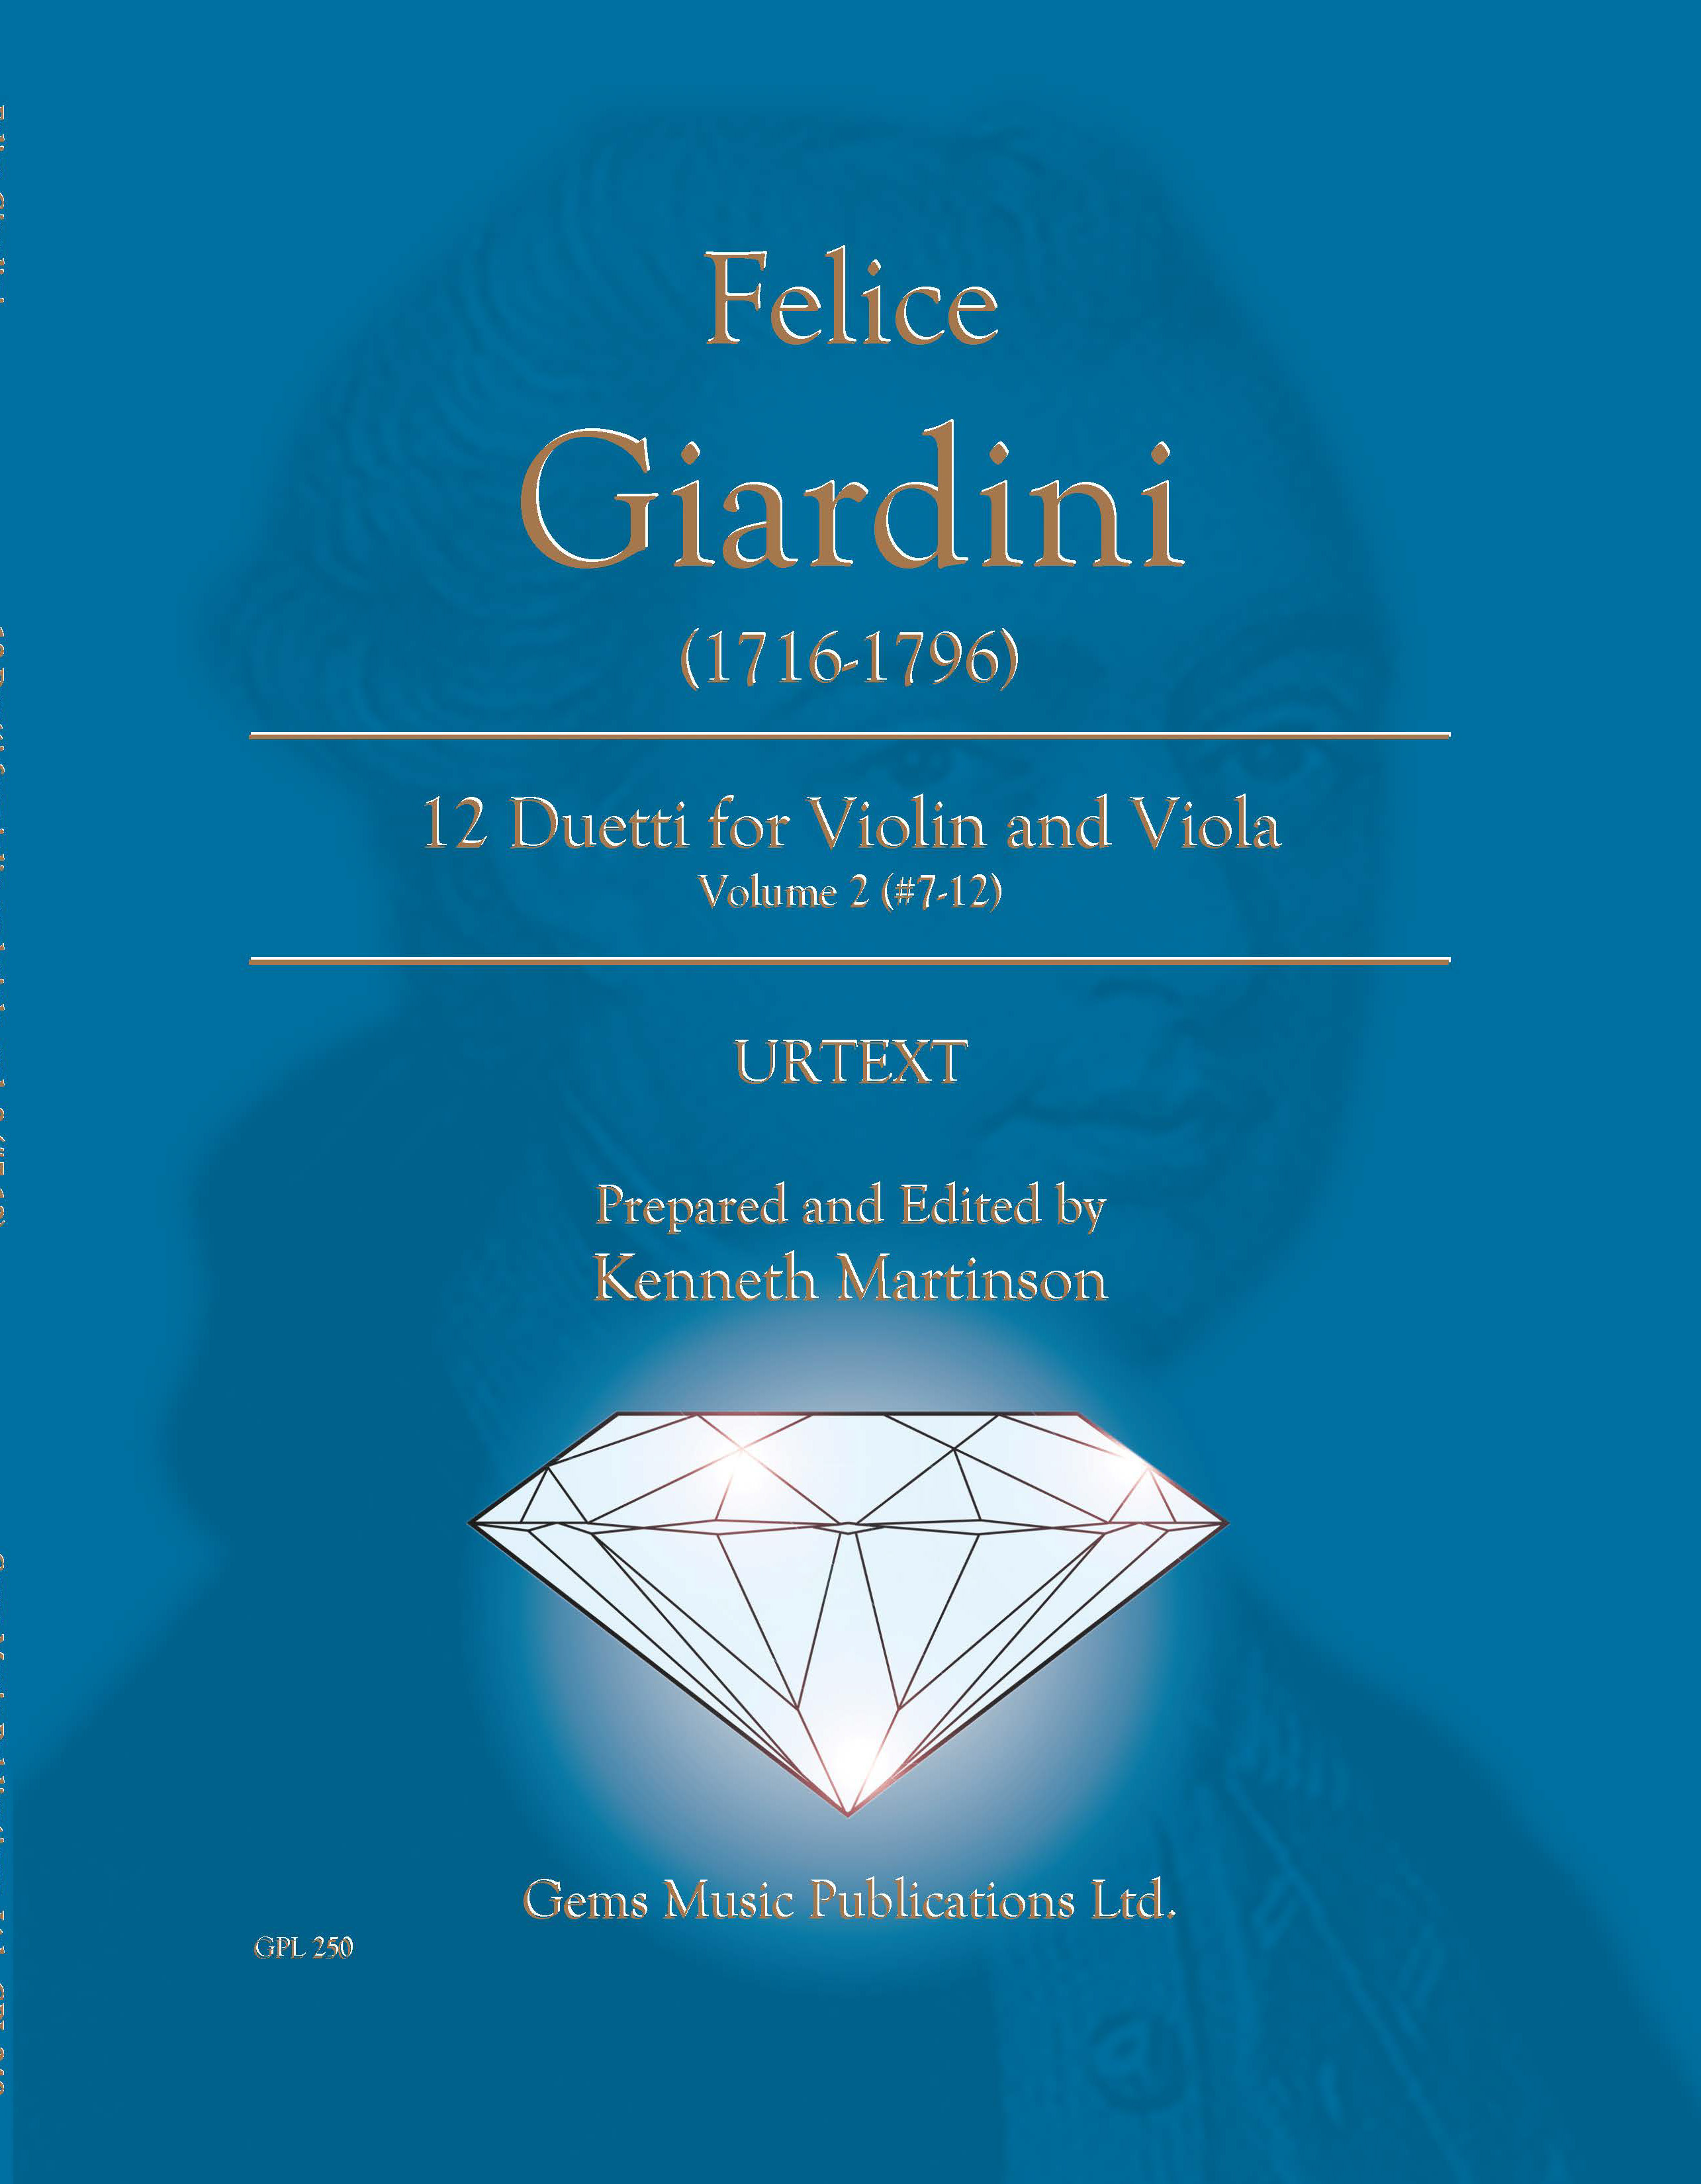 12 Duetti for Violln and Viola, Vol. 2